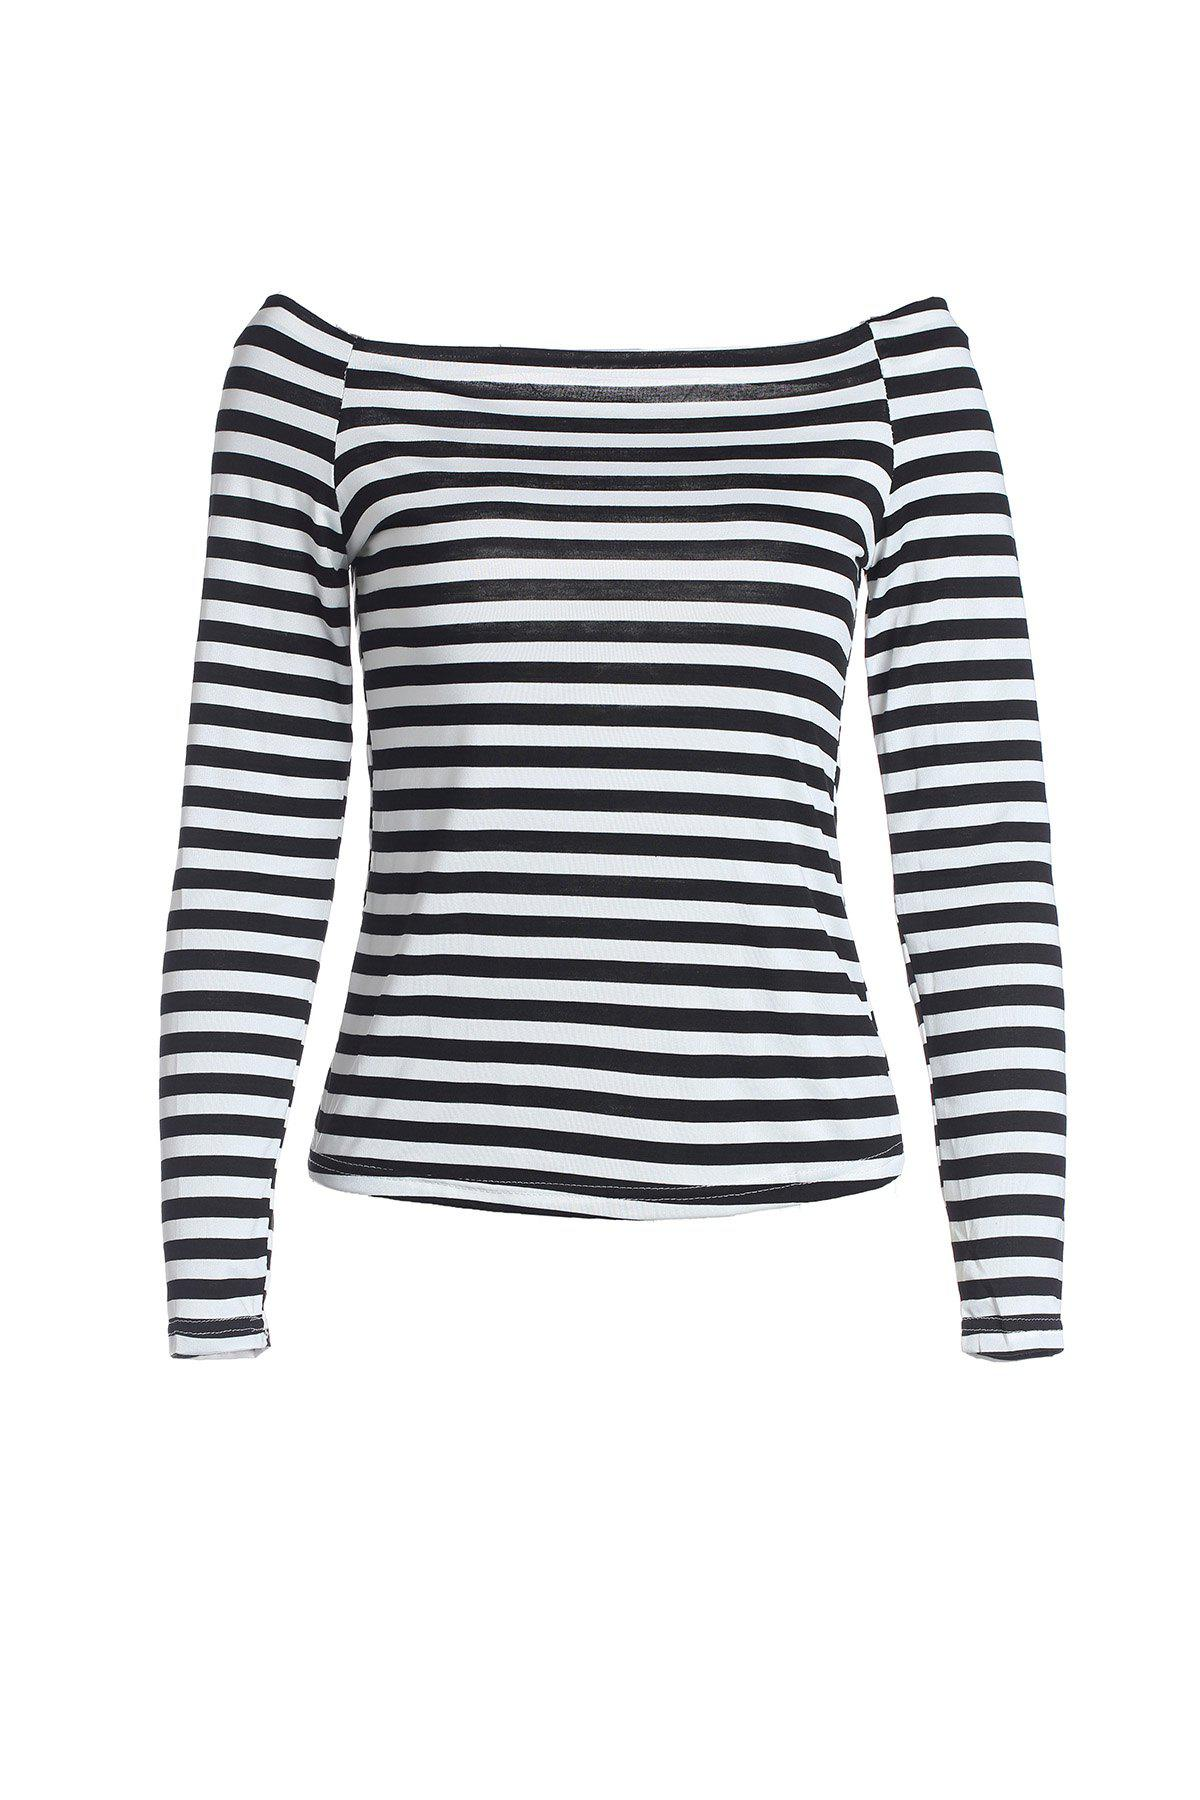 Alluring Off Shoulder Boat Neck Slim Fit Long Sleeve Stretchy Cotton Blend Women's T-Shirt - STRIPES ONE SIZE